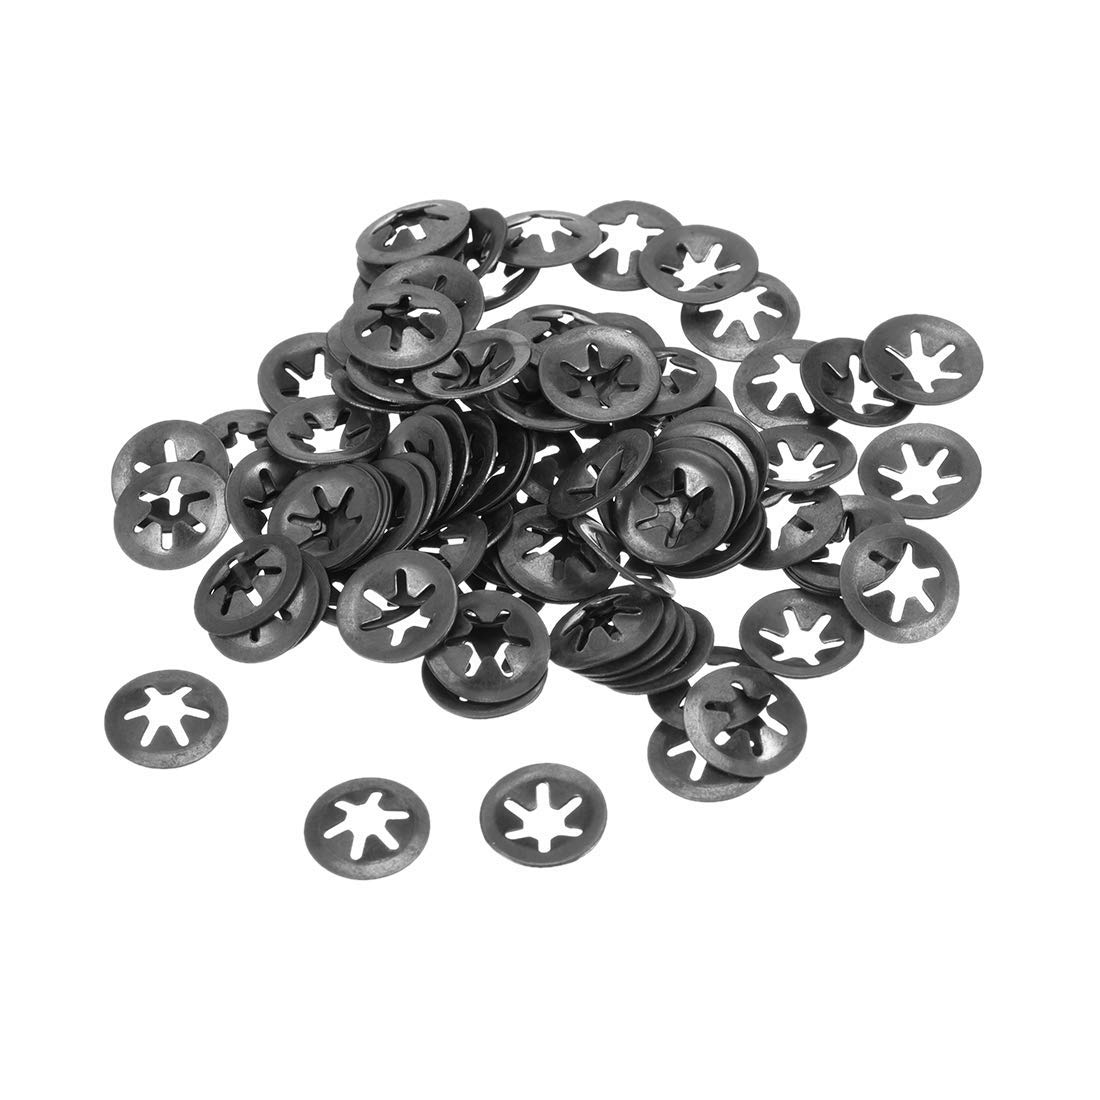 M4 Starlock Washer 3.5mm I.D 12 mm Outer Diameter Internal Tooth Lock washers Pressure Lock Speed Clip 65Mn Black Oxide Finish 100 Pieces